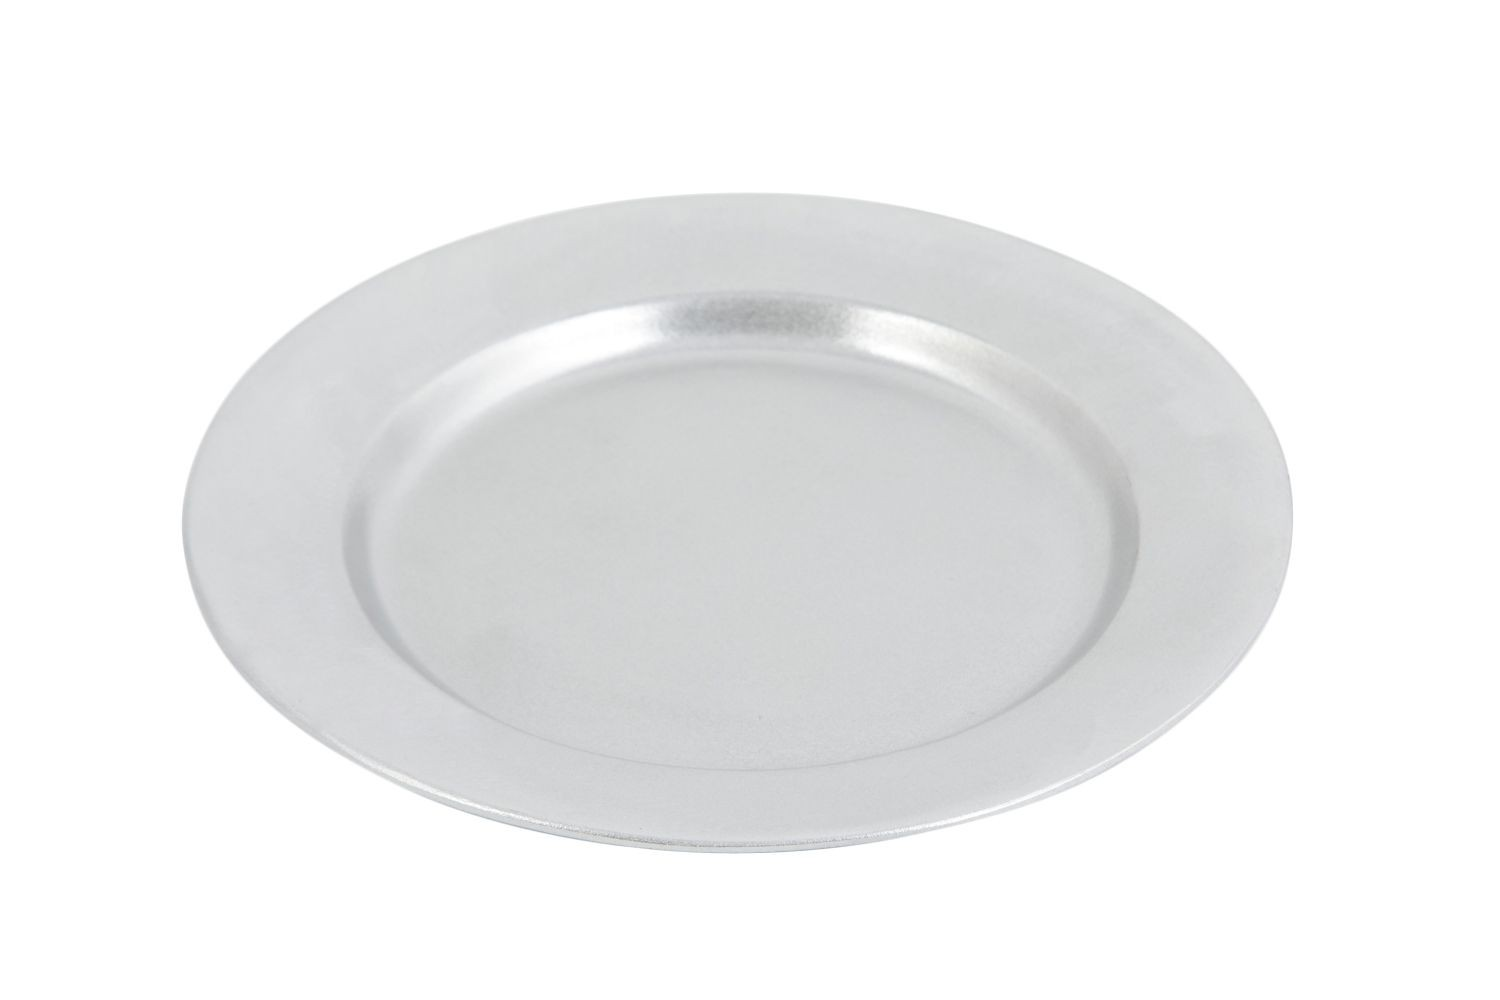 "Bon Chef 1043P Contemporary Dinner Plate, Pewter Glo 10 1/2"" Dia., Set of 3"